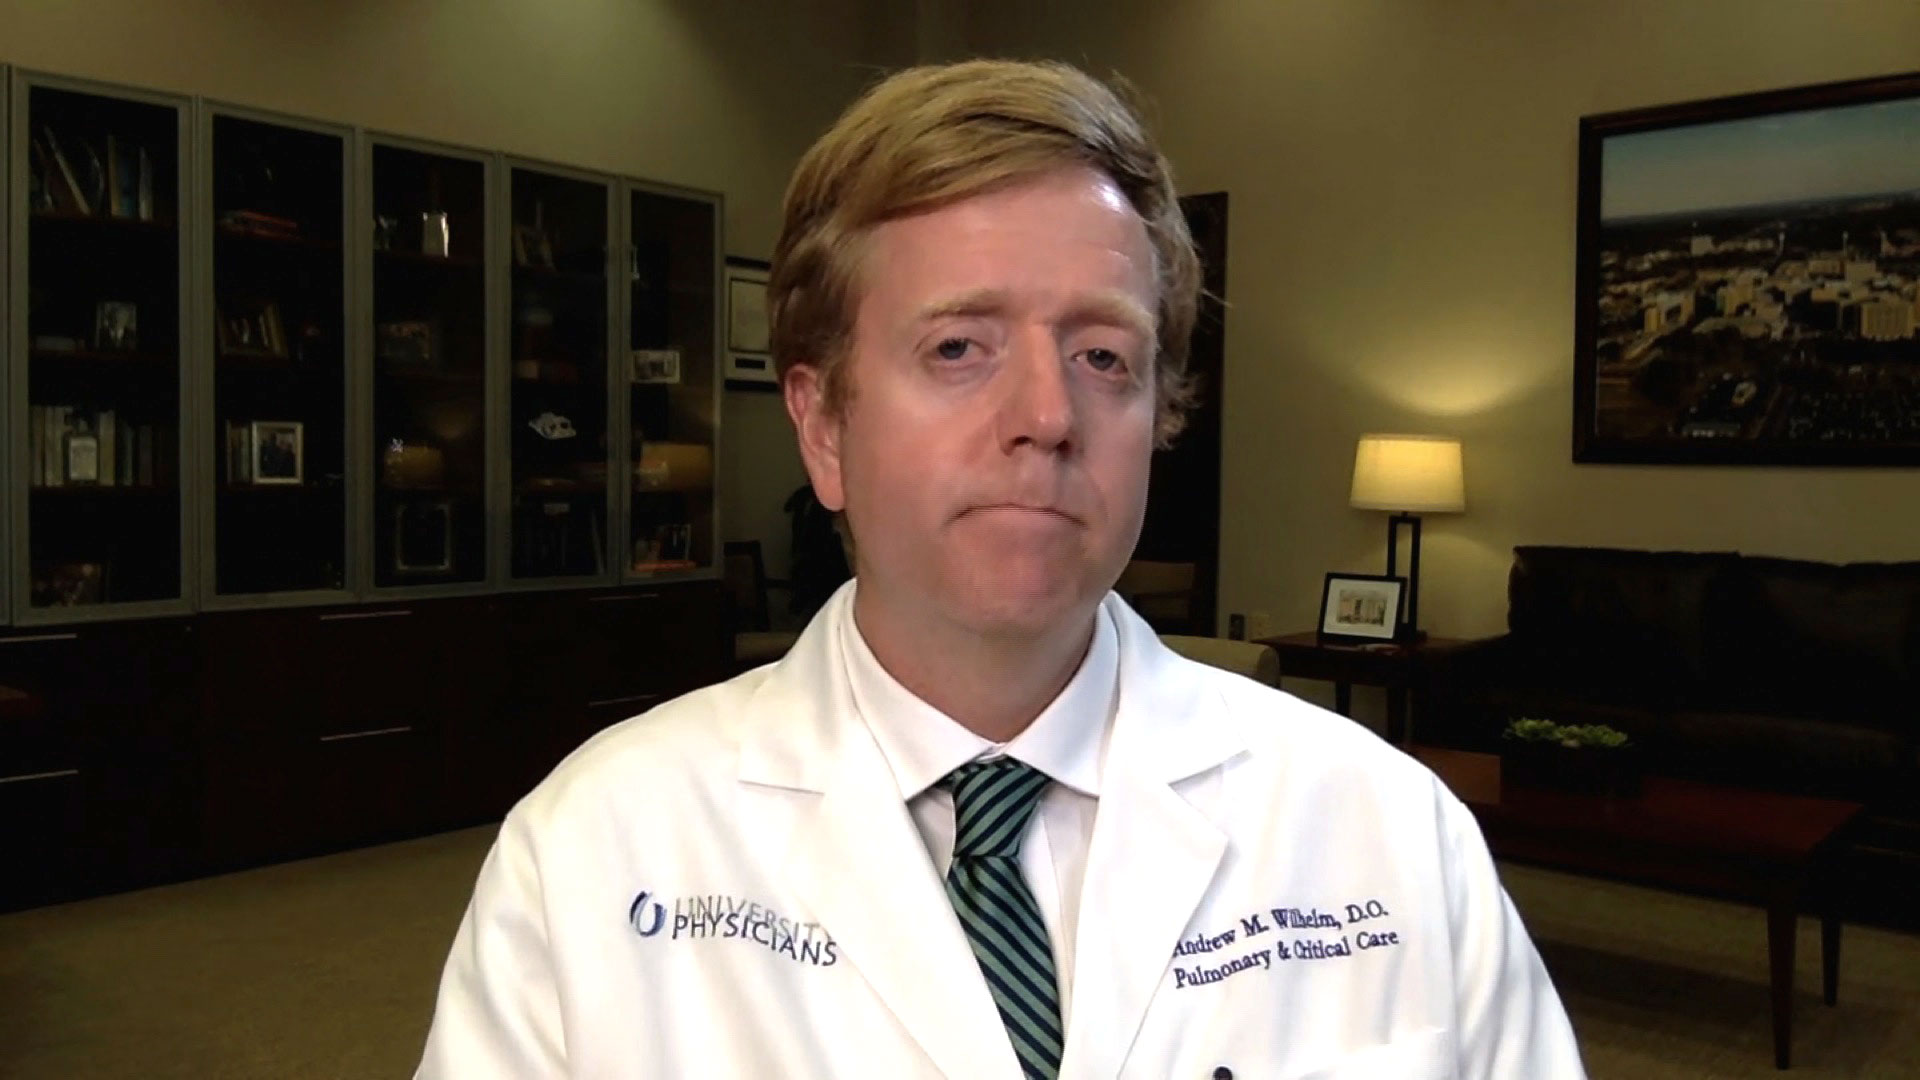 Dr. Andrew Wilhelm, director of the University of Mississippi Medical Center's Intensive Care Unit, speaks with CNN on August 6.